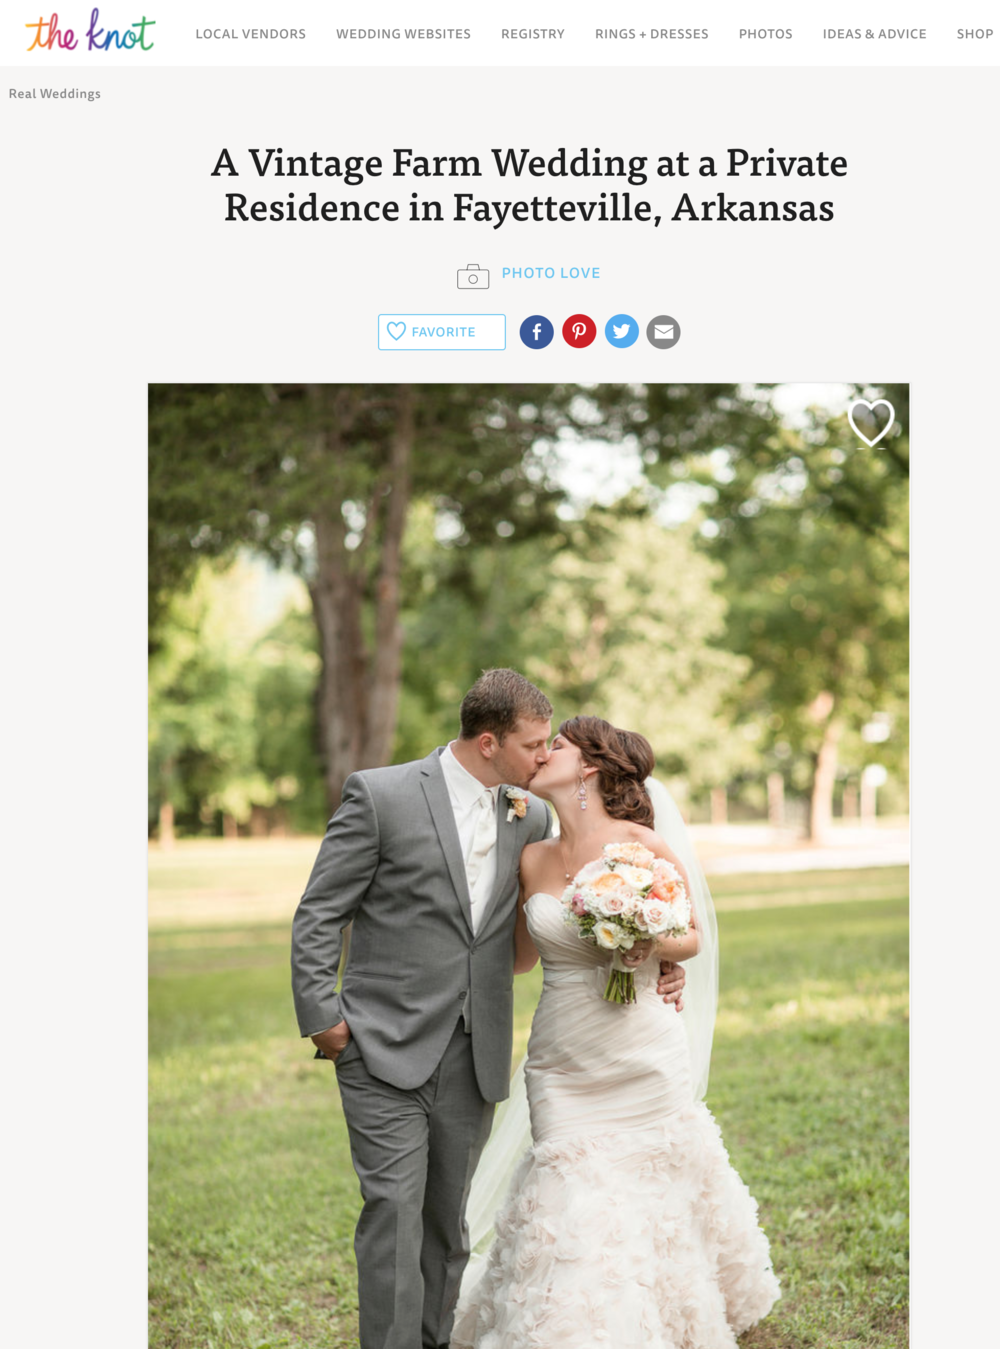 Emily + Dylan | Featured on The Knot Real